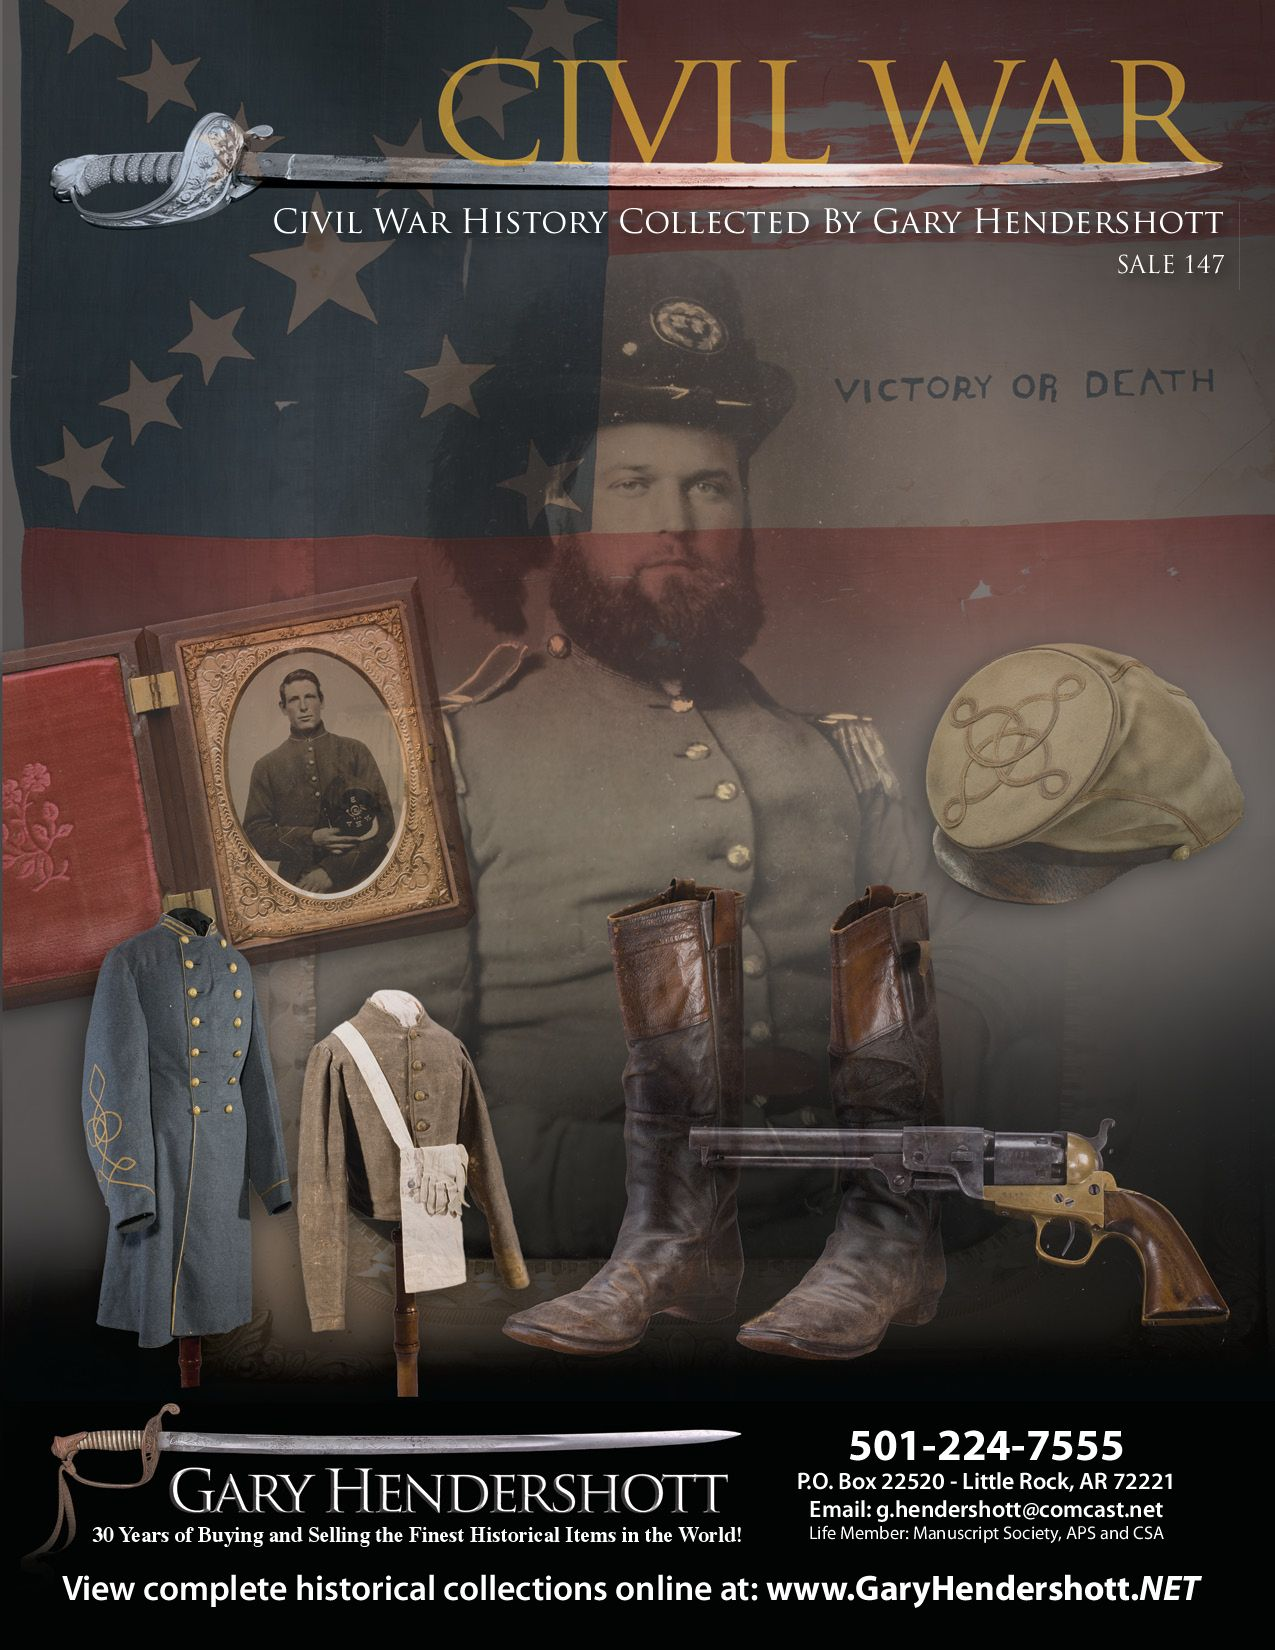 Civil War History - sale 147 by Kyle Holmes - Dreamedia